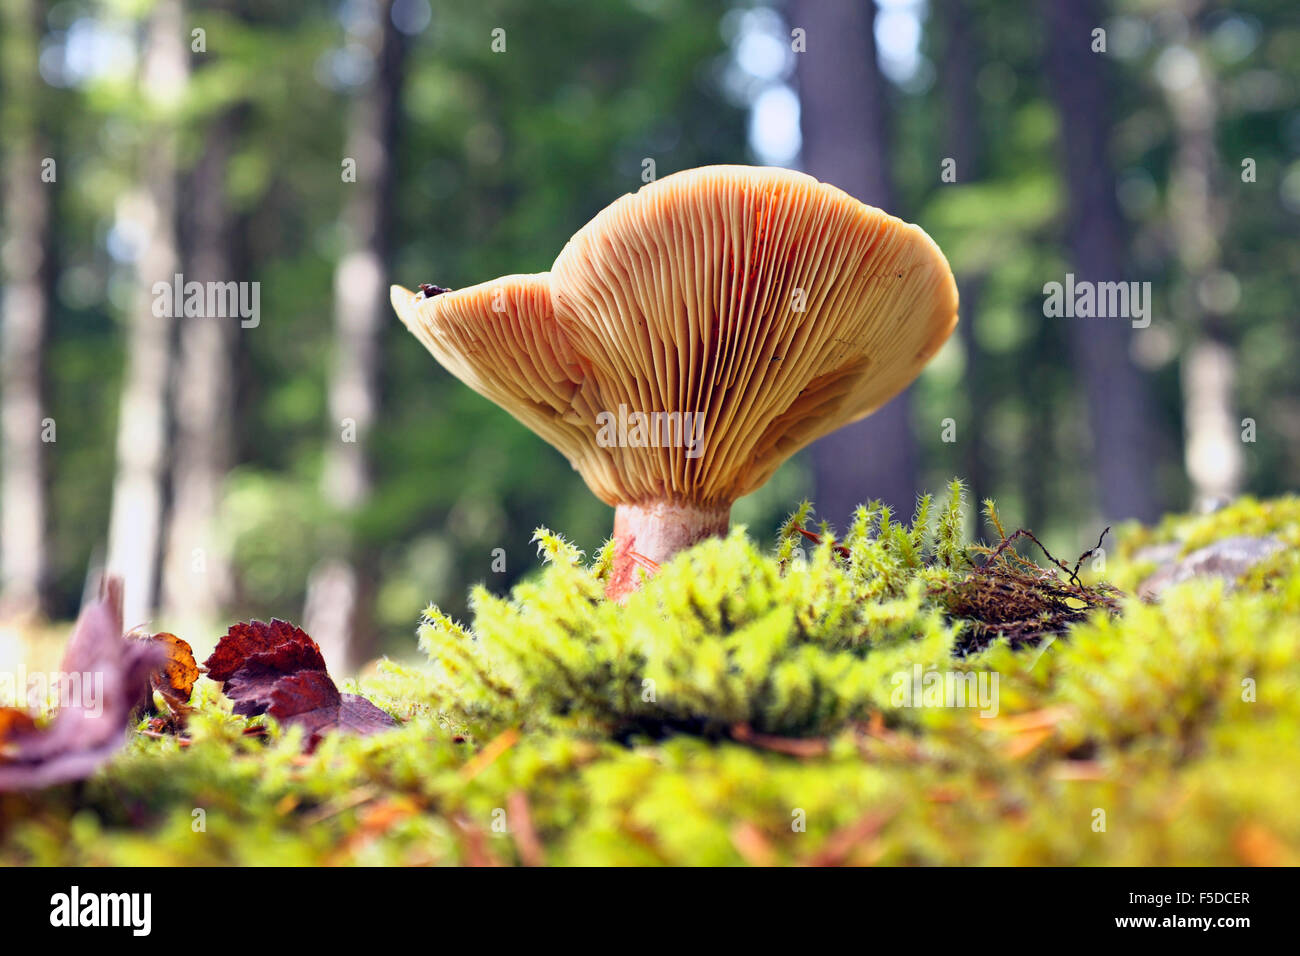 Russula brevipes, a large common mushroom in the Pacific Northwest - Stock Image